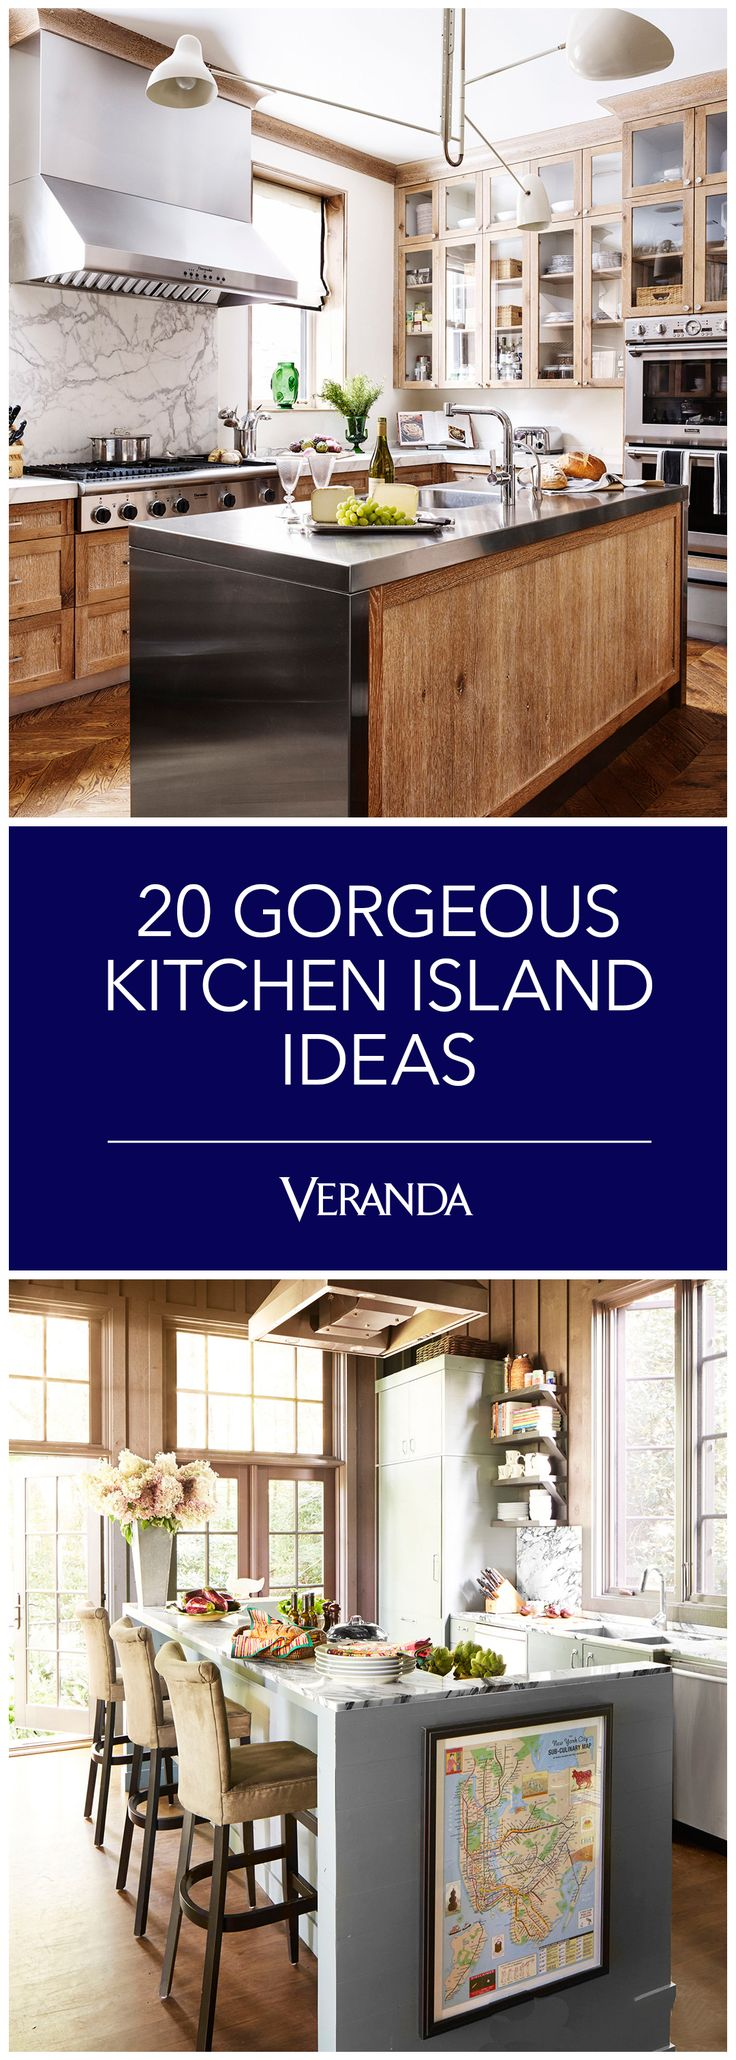 278 best kitchens we love images on pinterest kitchen kitchen 20 beautiful kitchen islands brimming with style